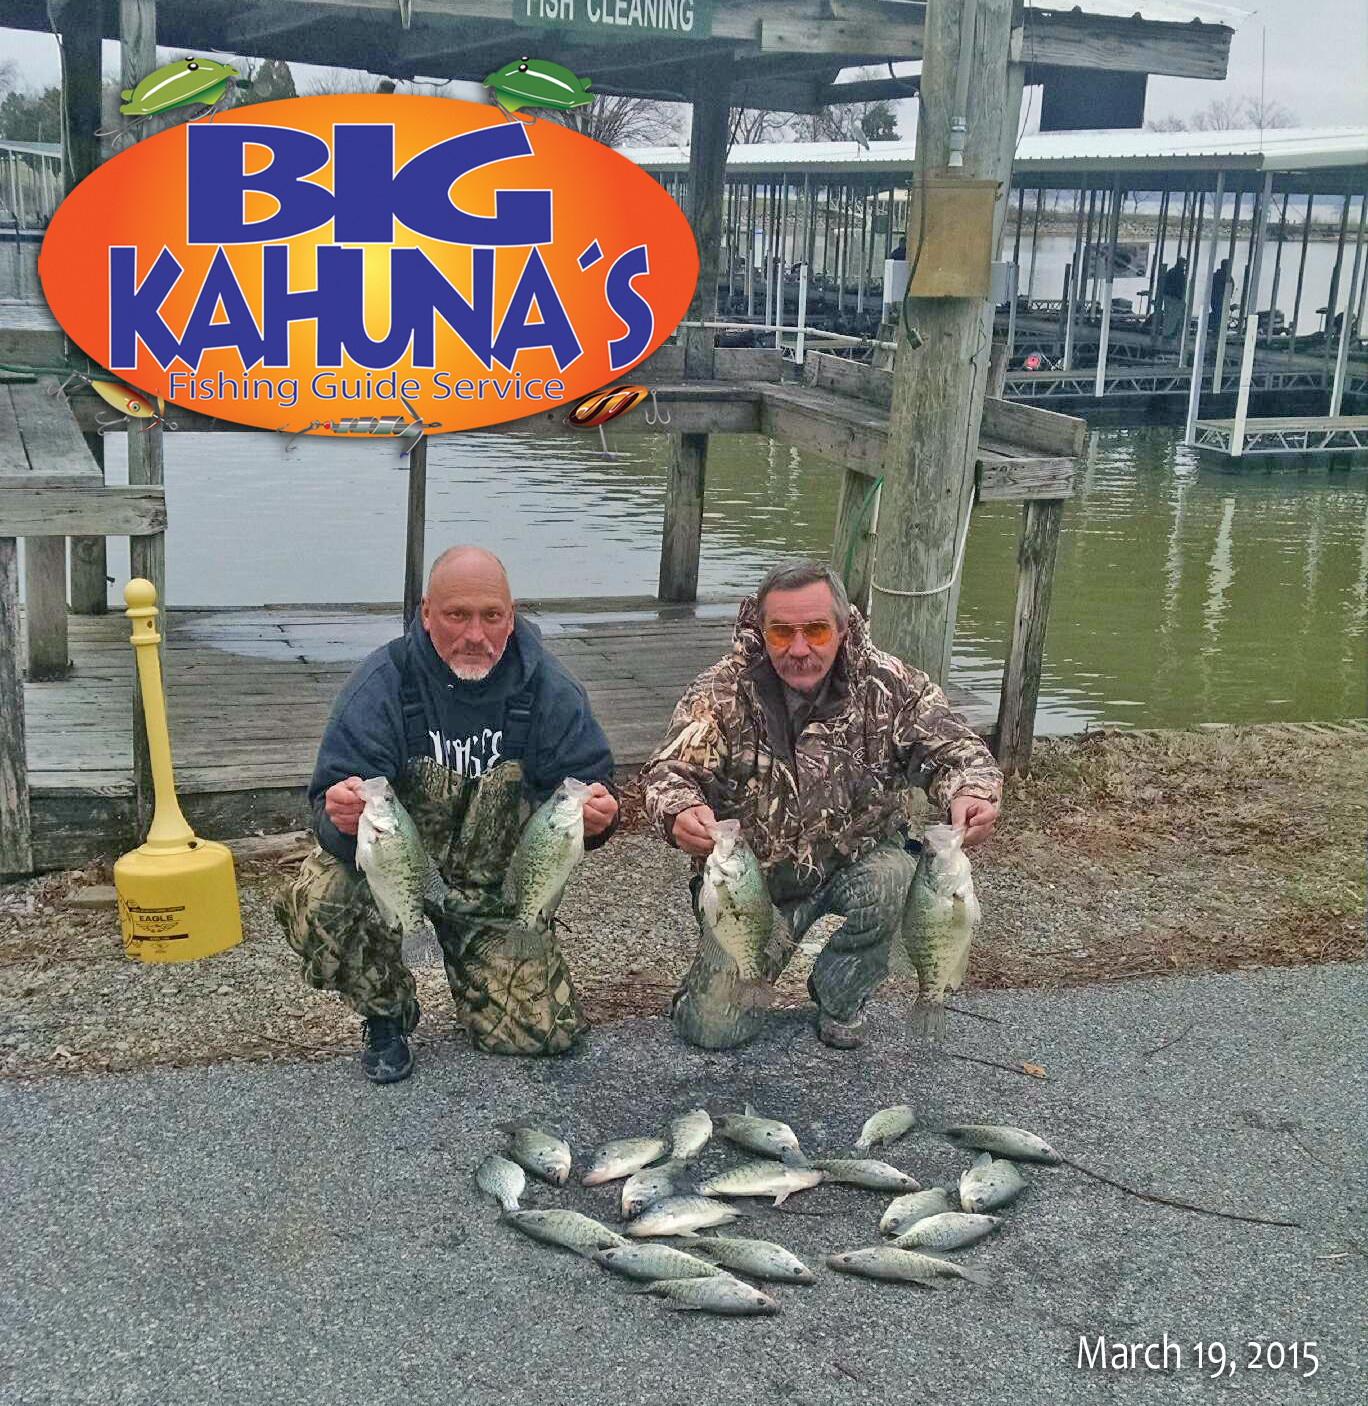 Moors Resort & Marina: Big Kahuna Guided Fishing Trip